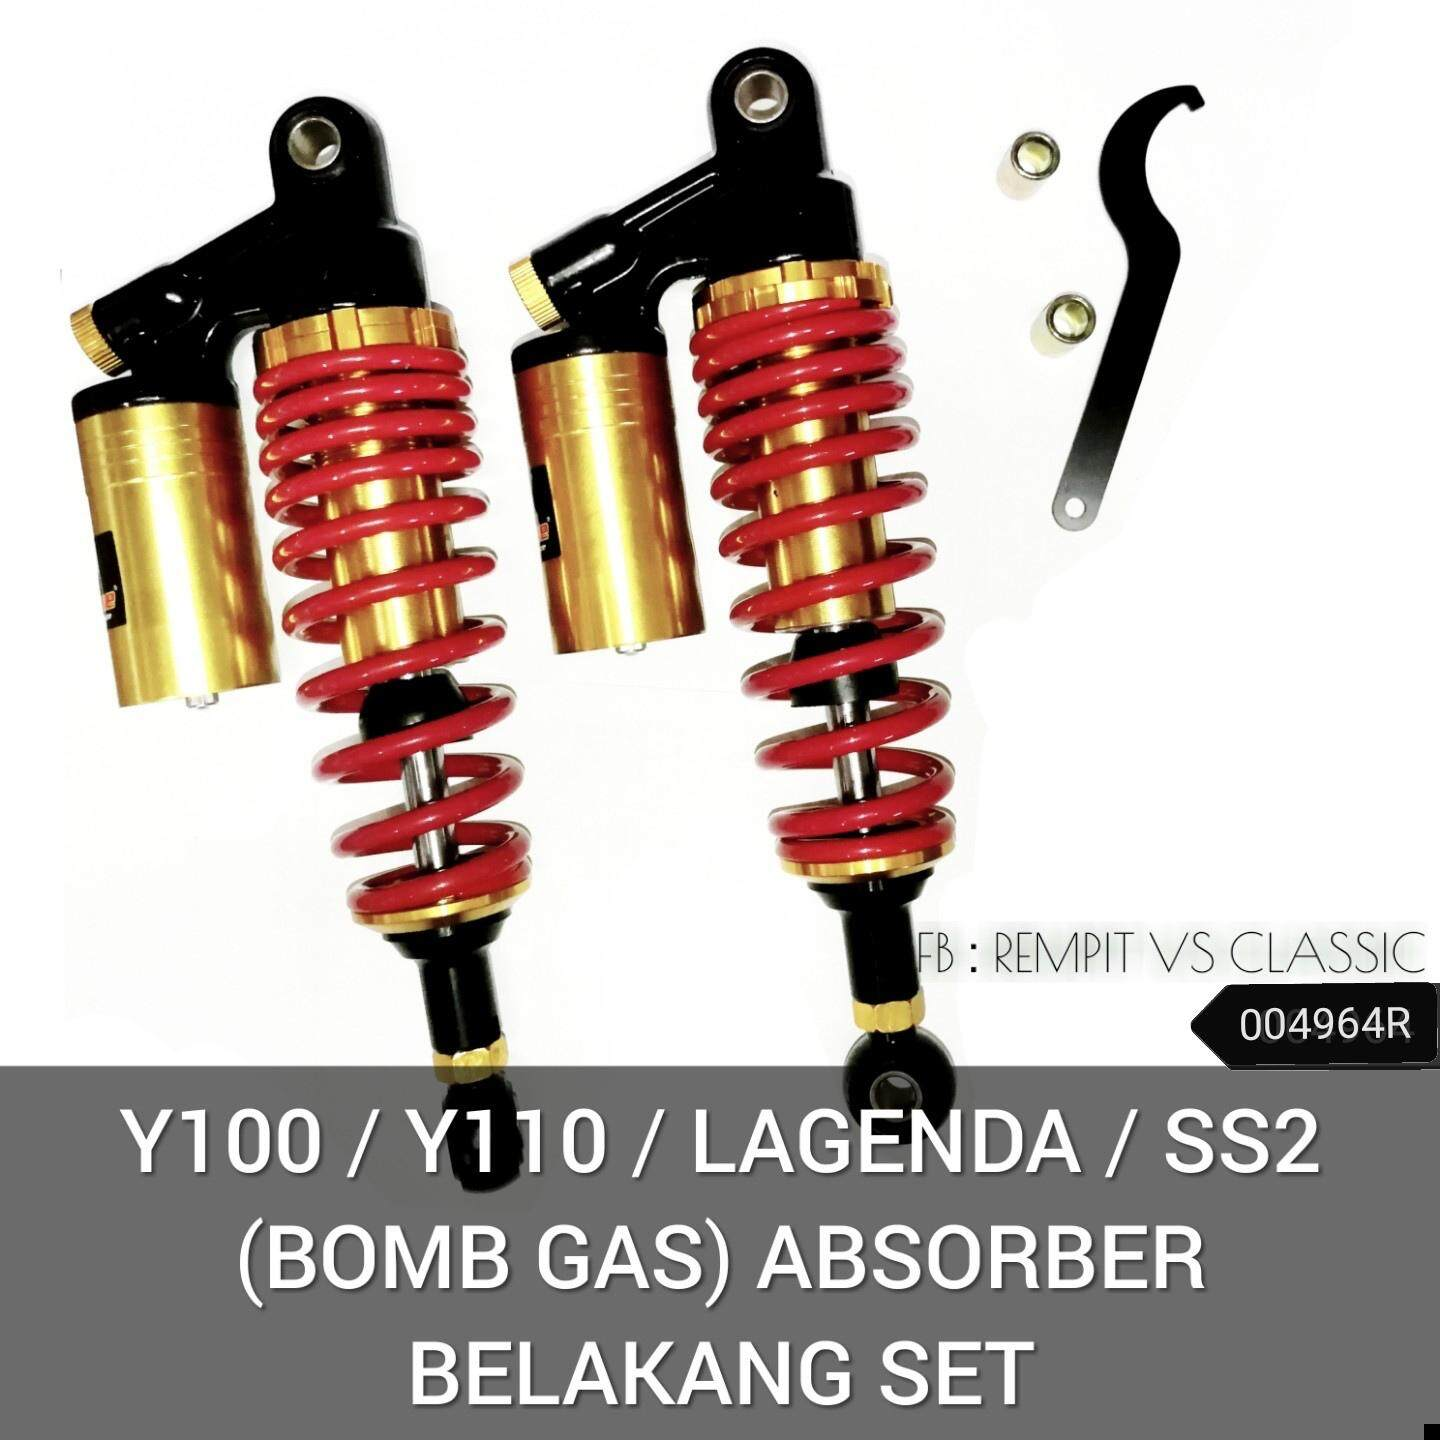 Y100 / Y110 / LAGENDA / SS2 (BOMB GAS) ABSORBER BELAKANG SET Malaysia